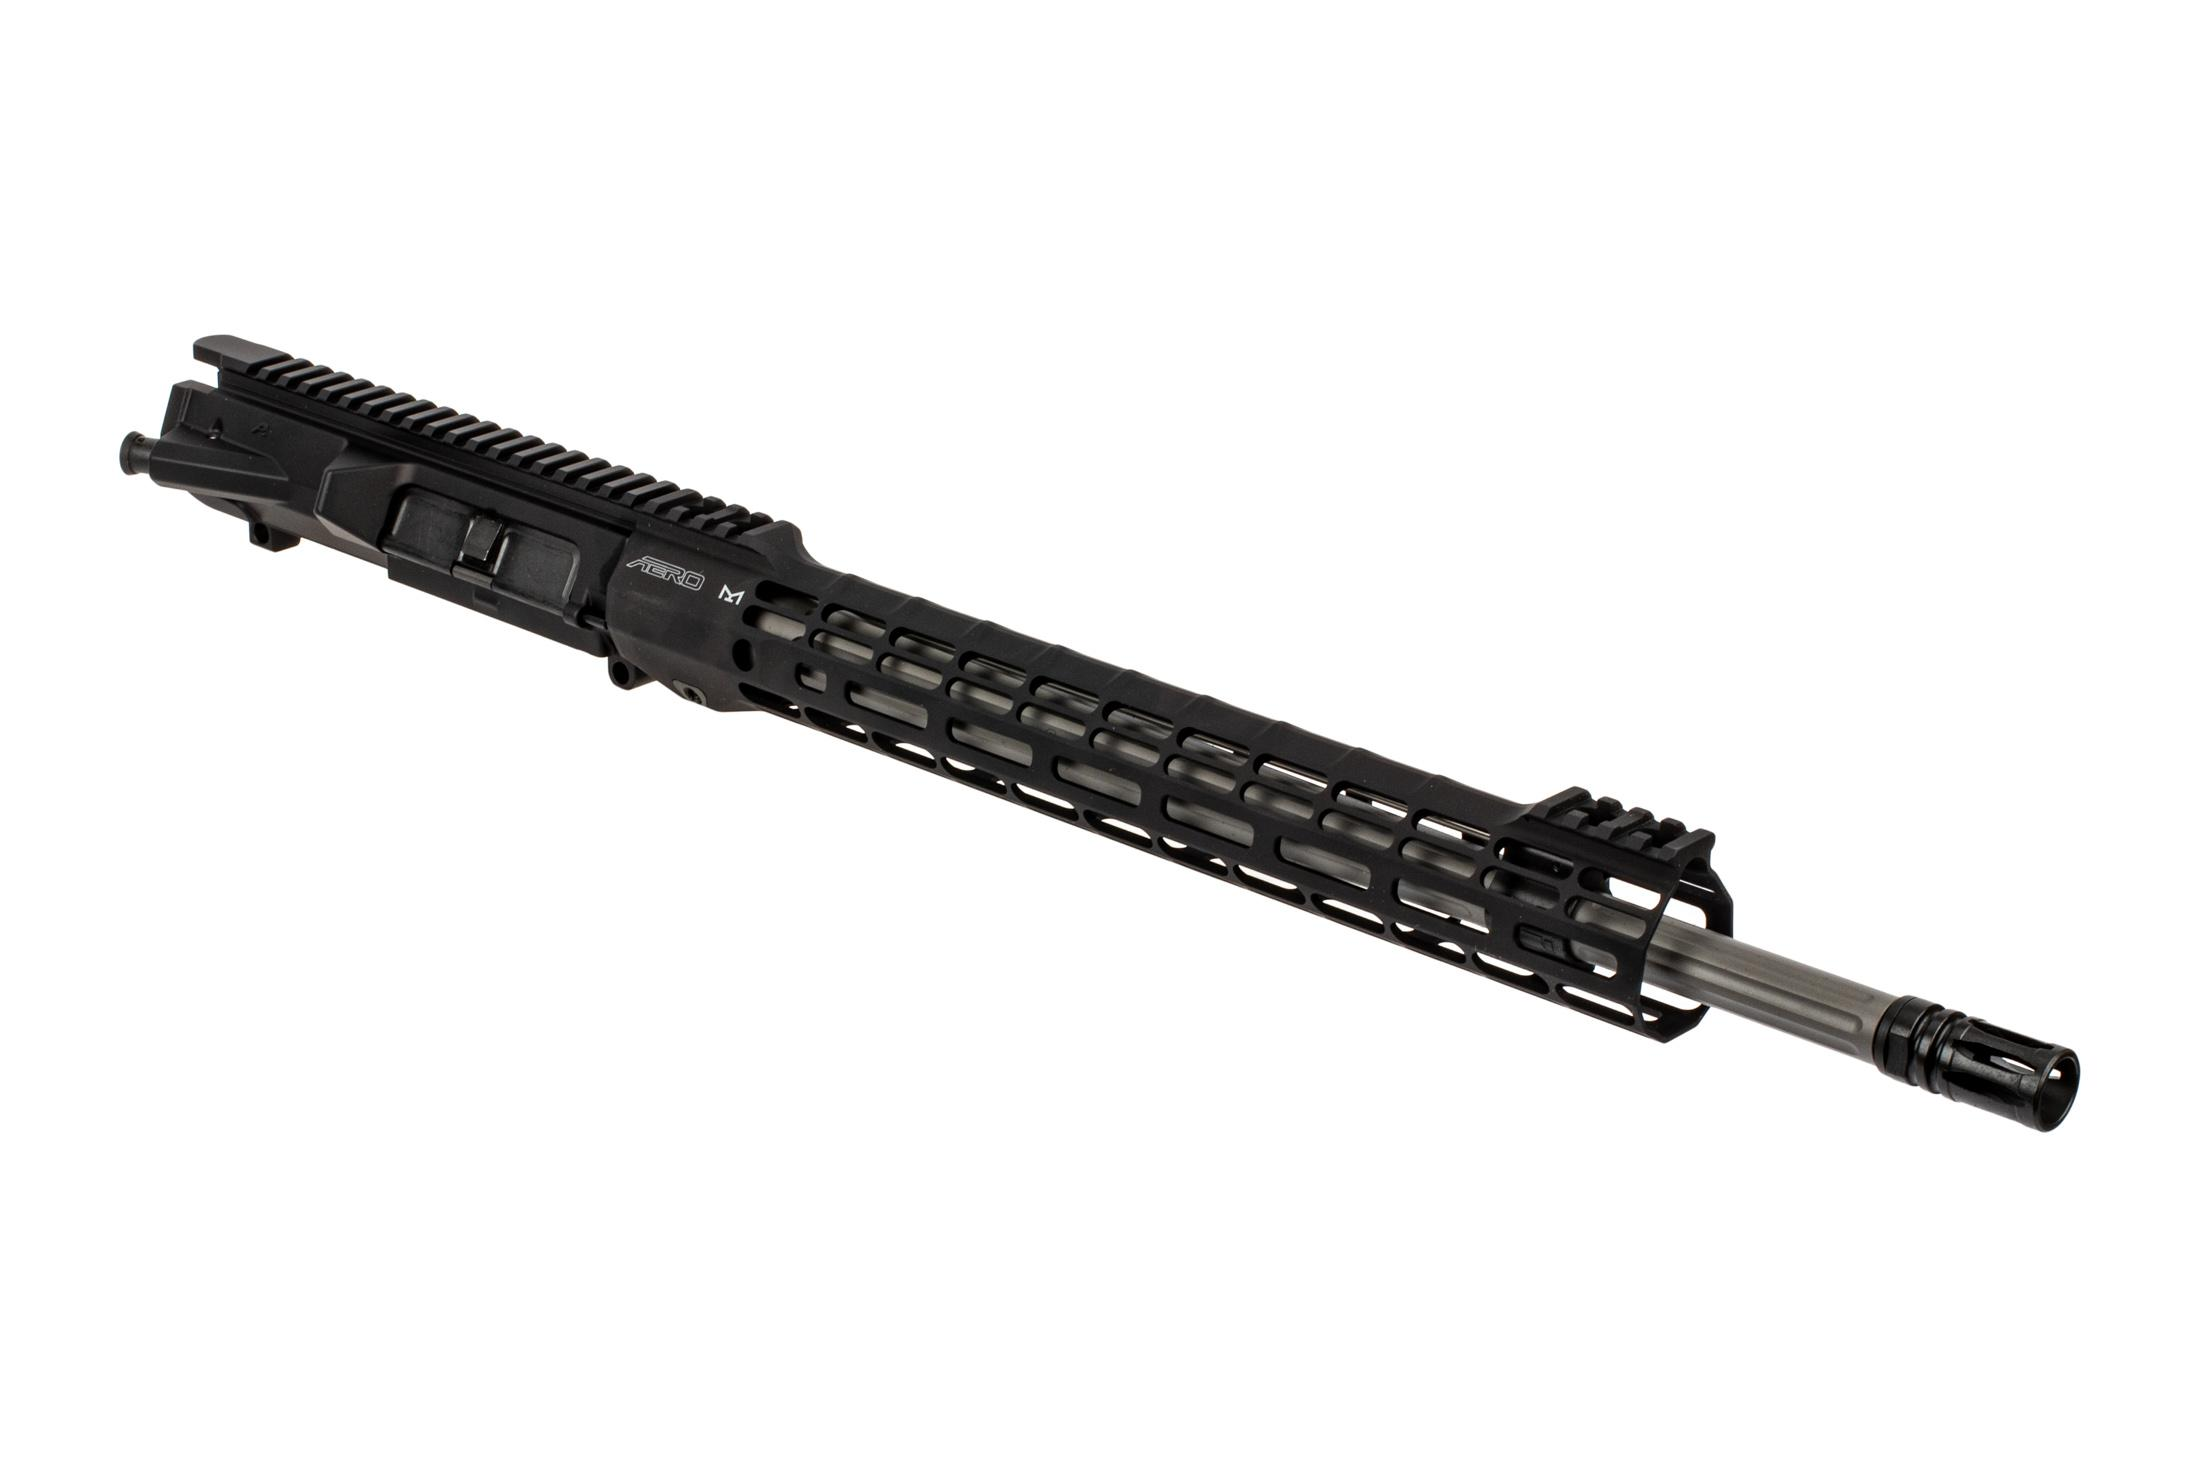 Aero Precision M5 Barreled Upper features a 308 fluted 18 inch barrel